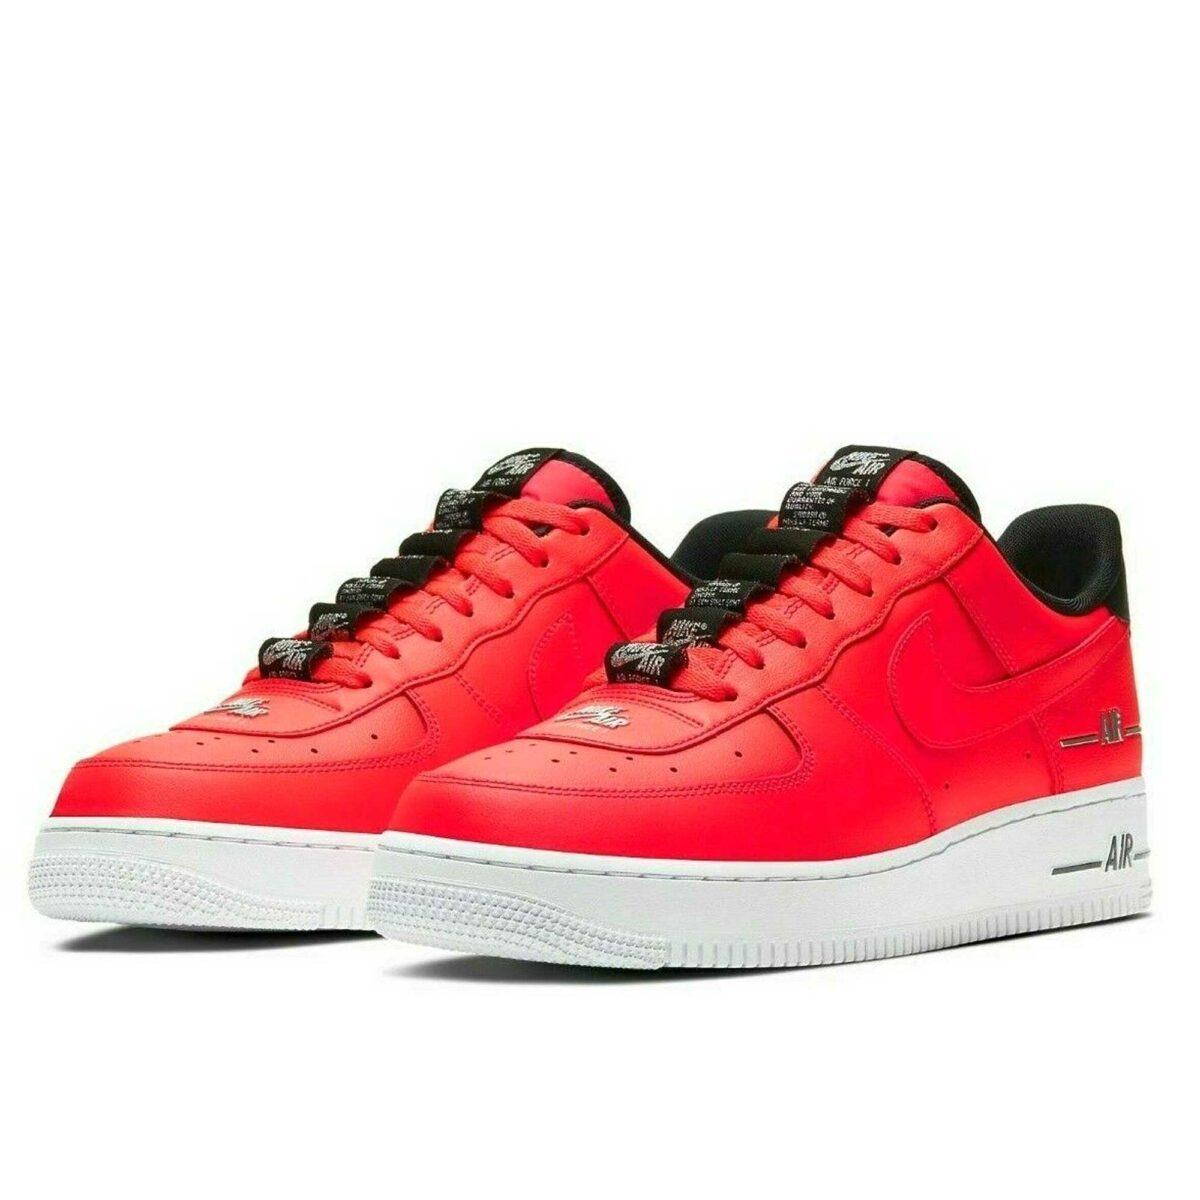 nike air force 1 gs lv8 3 double air red cj1379_600 купить